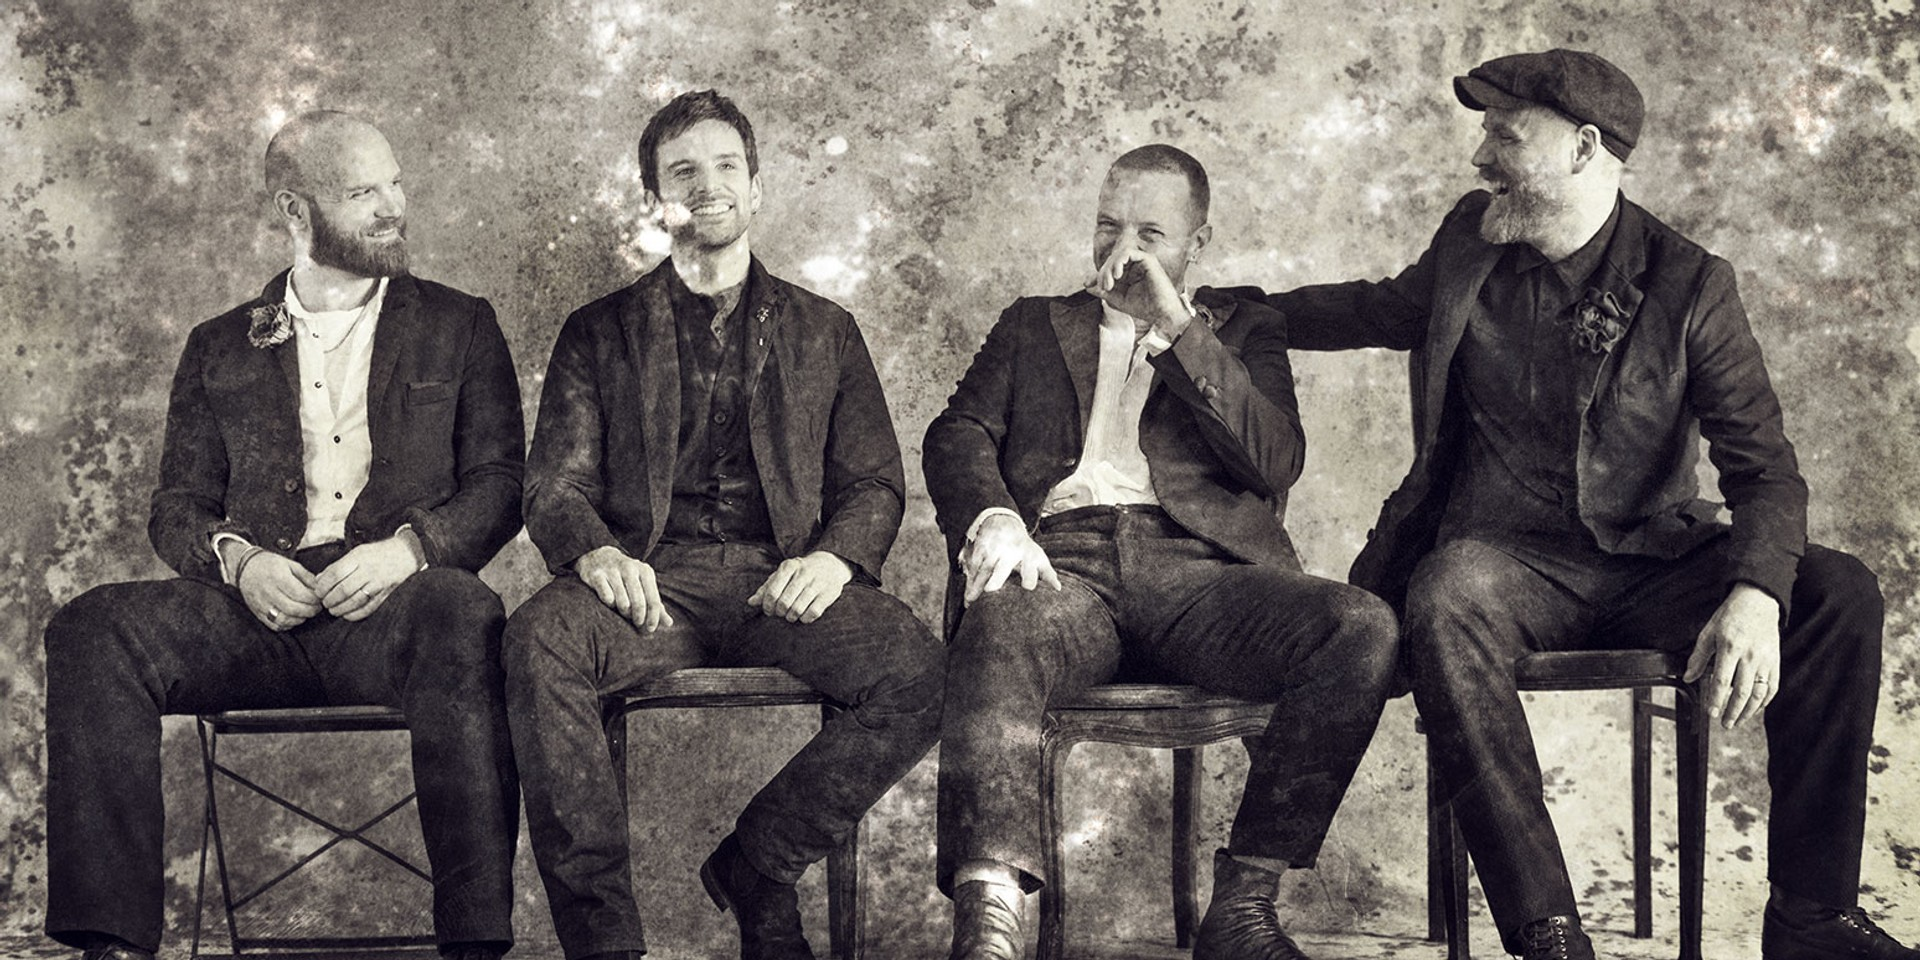 Coldplay has unveiled its new double album, Everyday Life